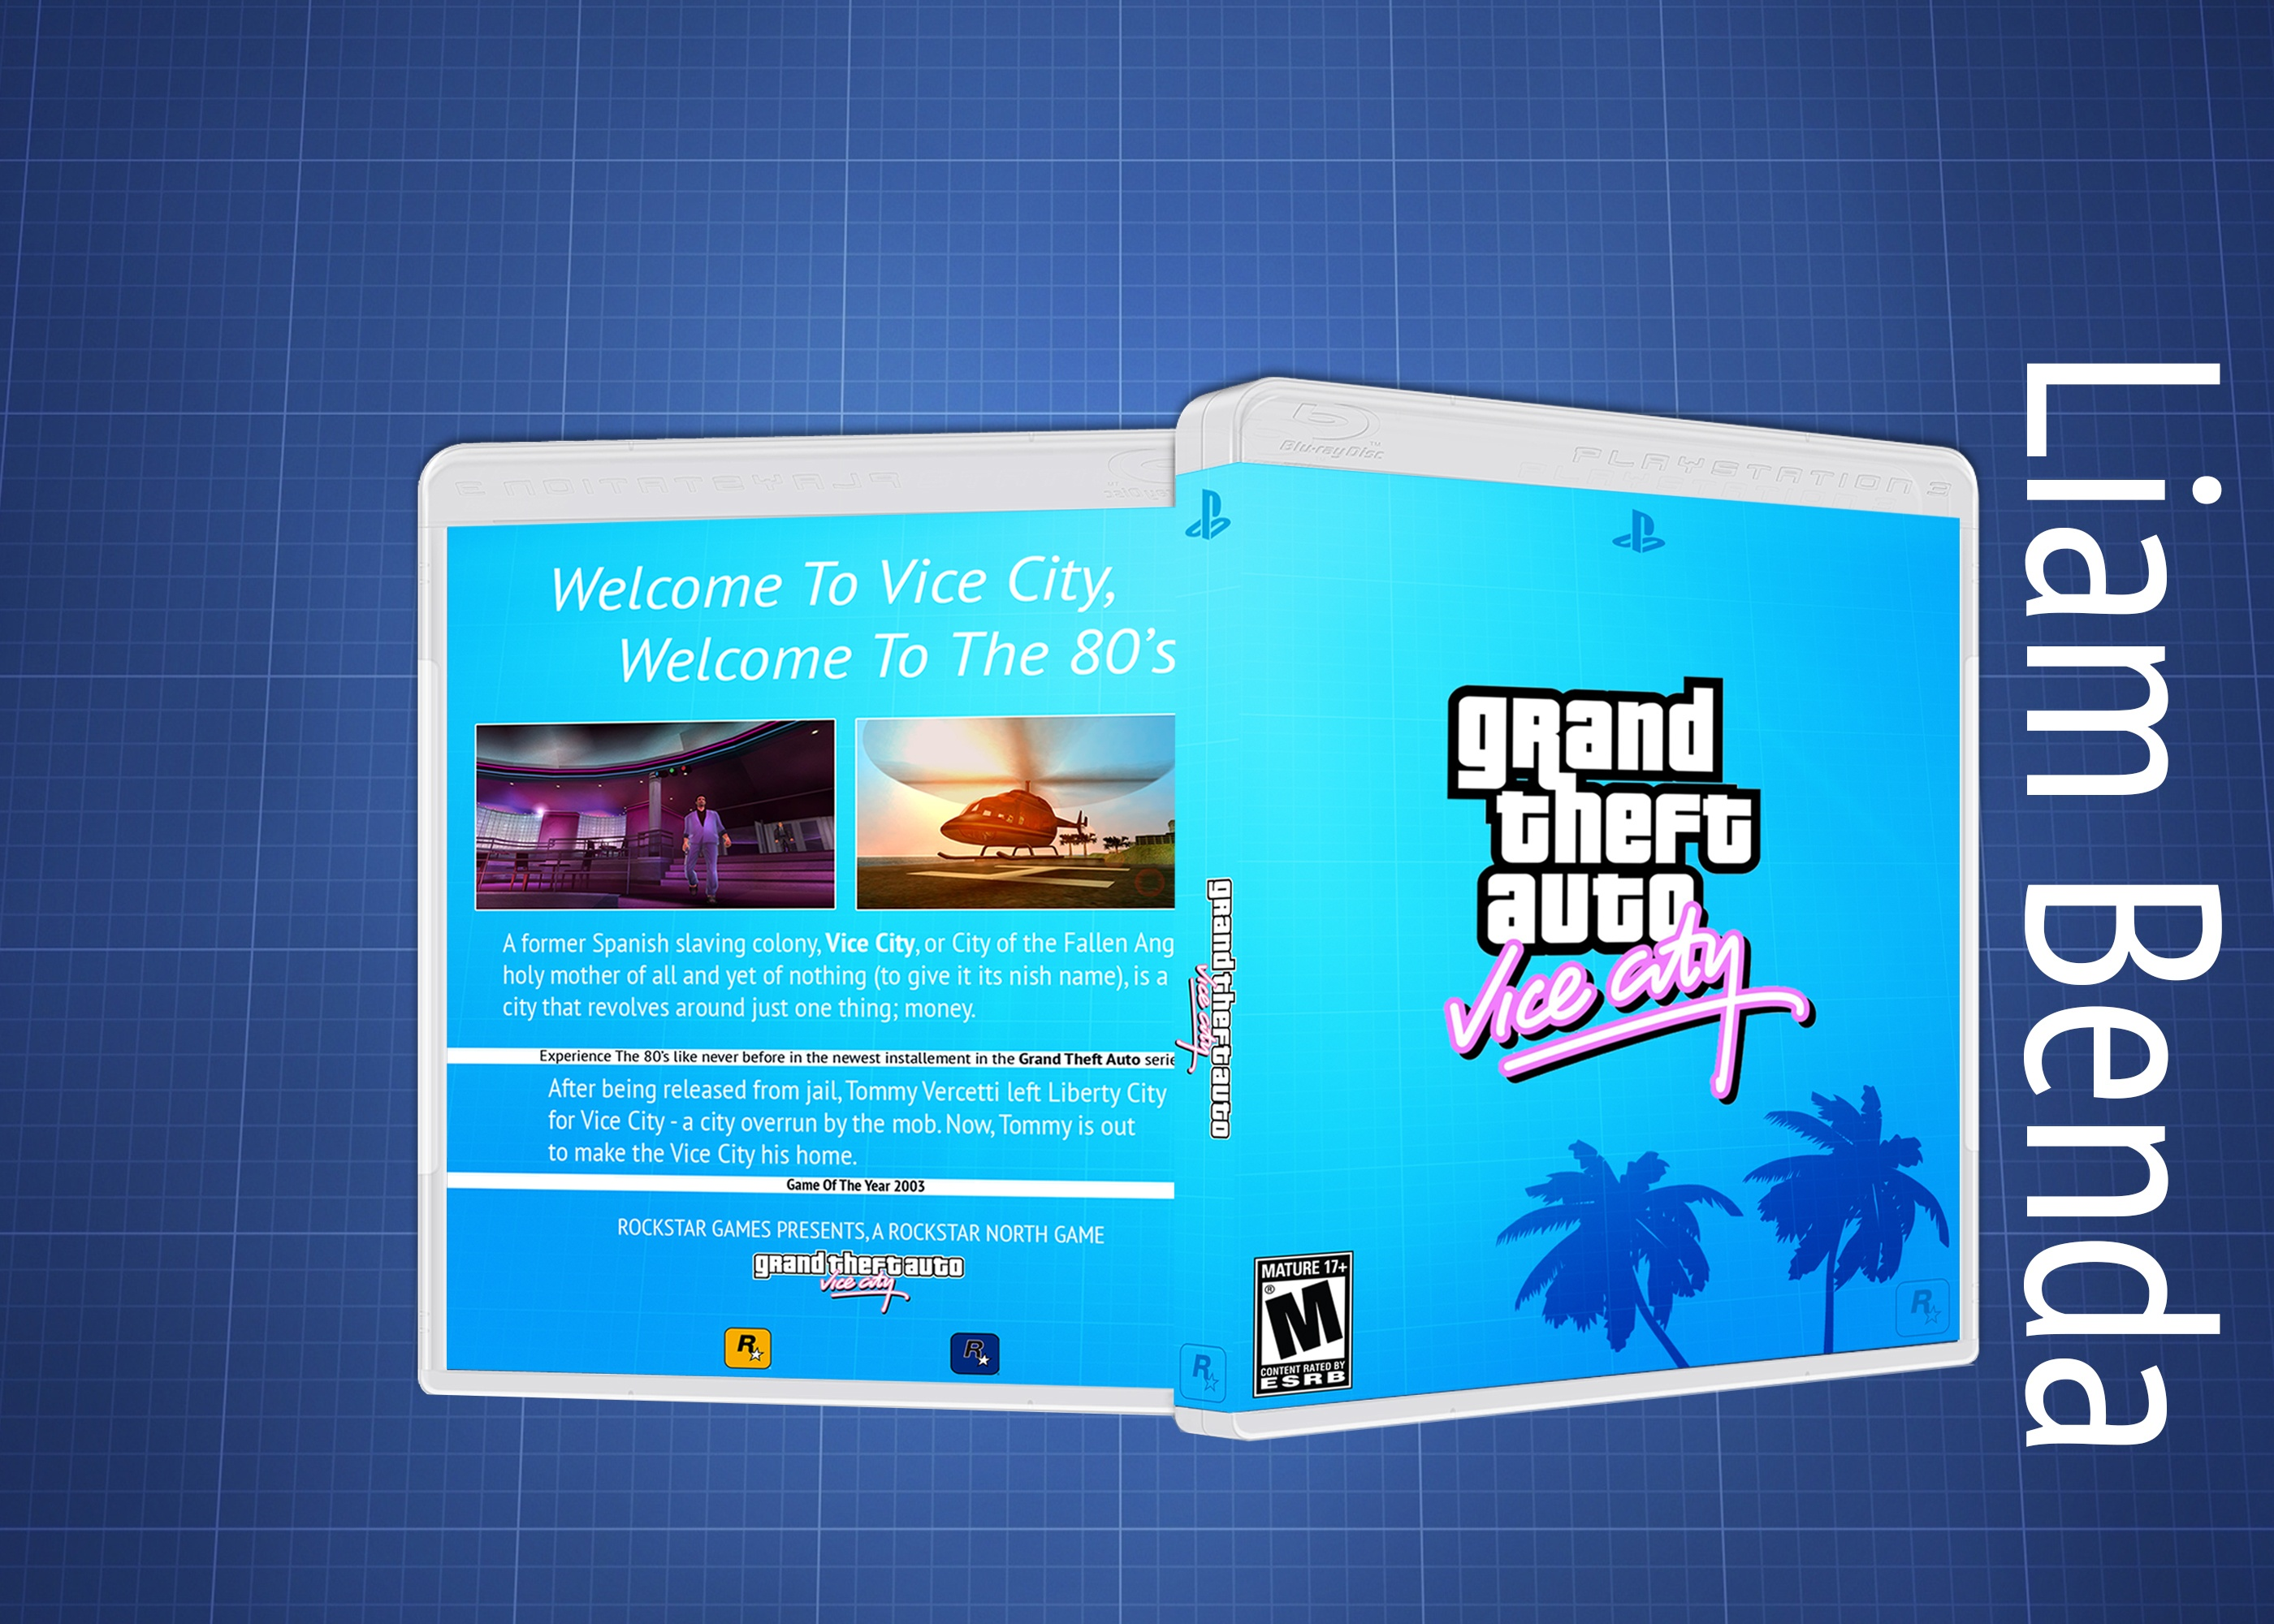 Grand Theft Auto Vice City box cover